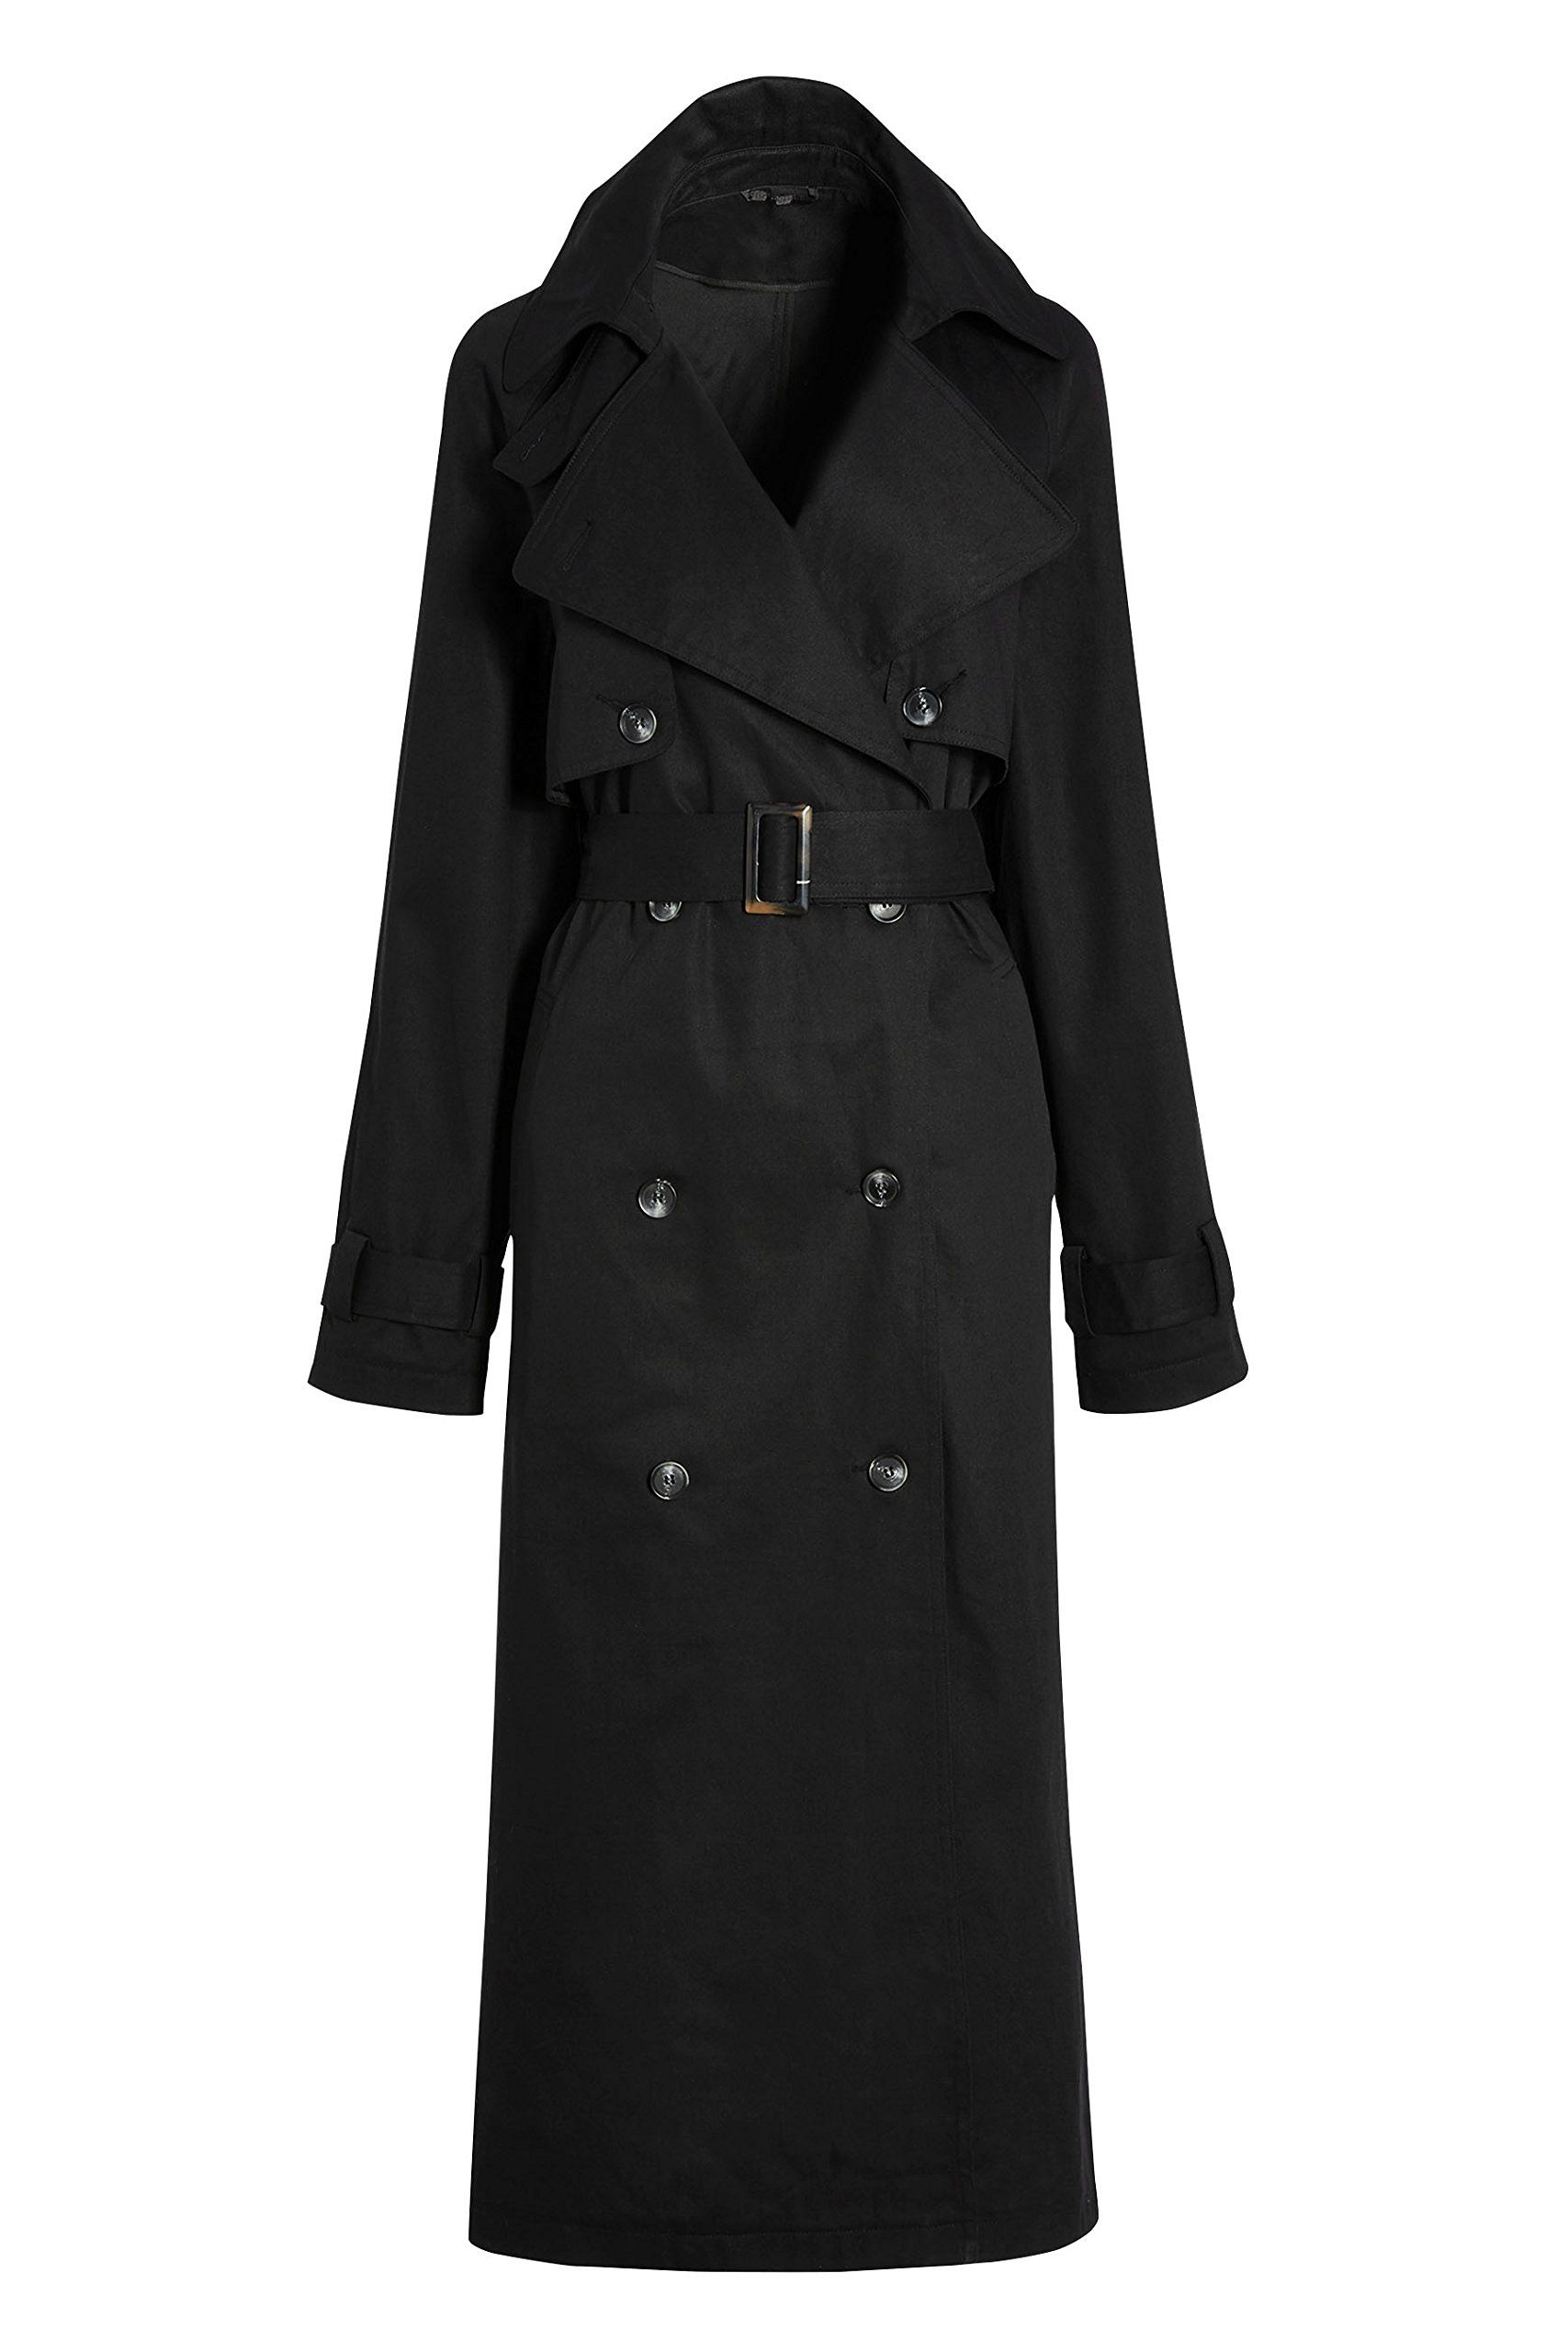 next Women Black Oversized Trench Jacket Top Petite Fit. next is ...